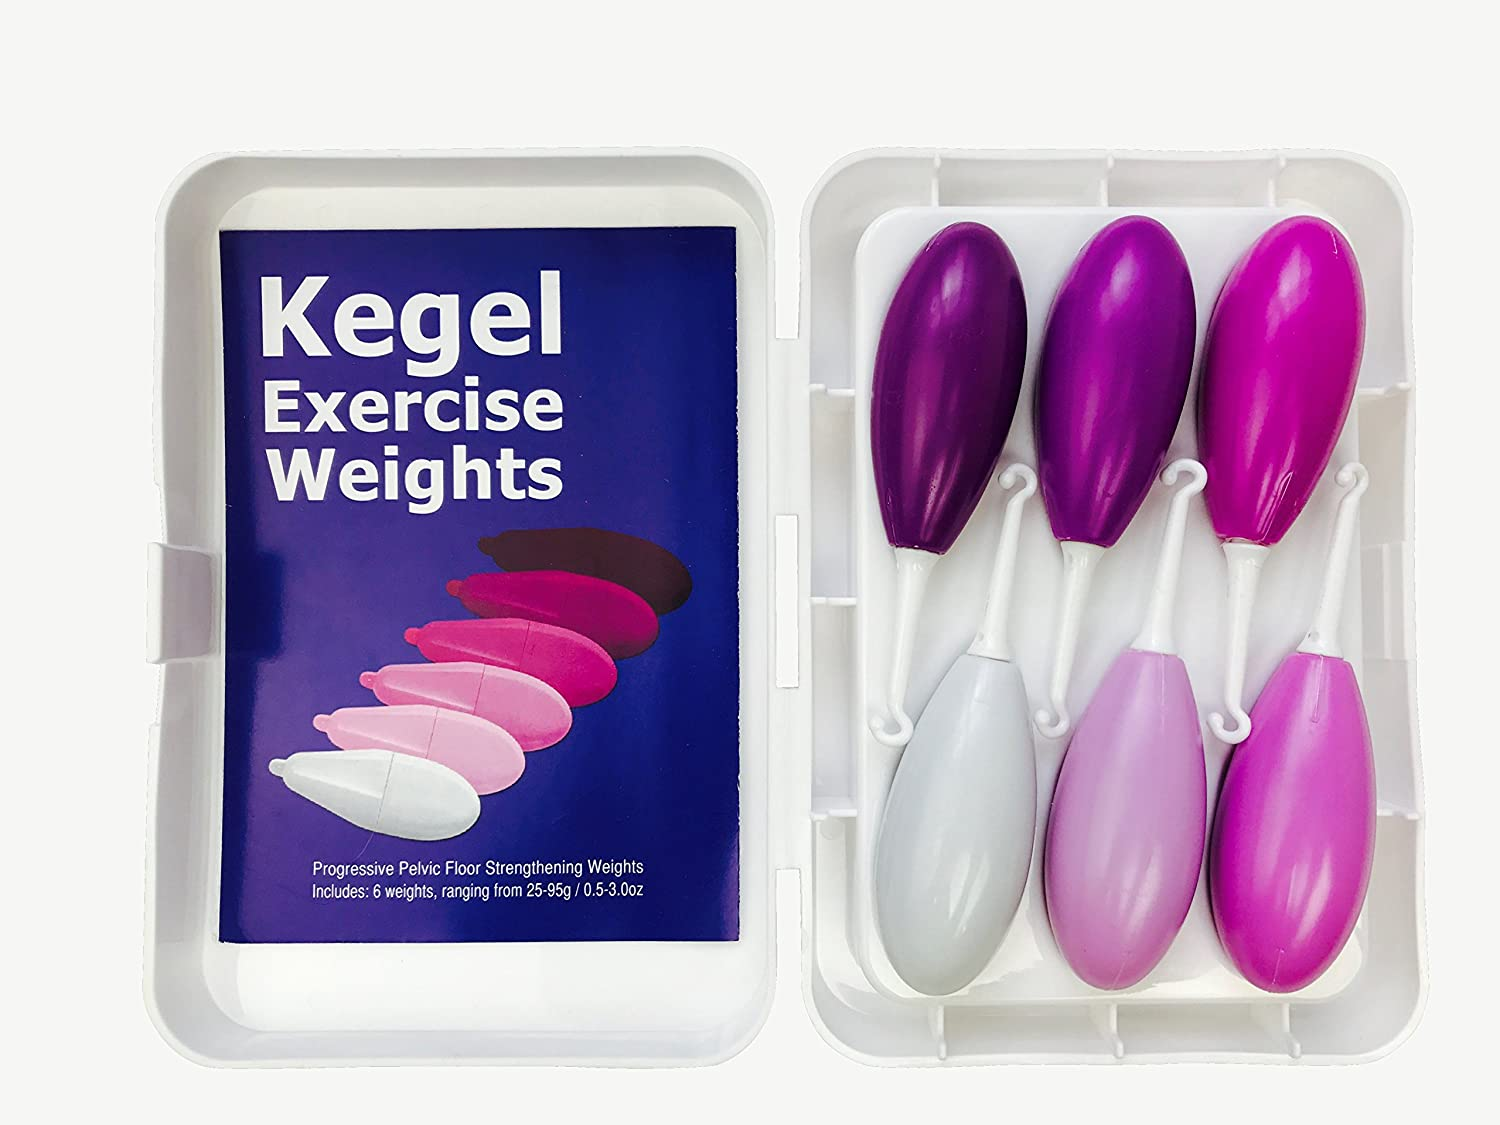 Kegel Exercises While Pregnant